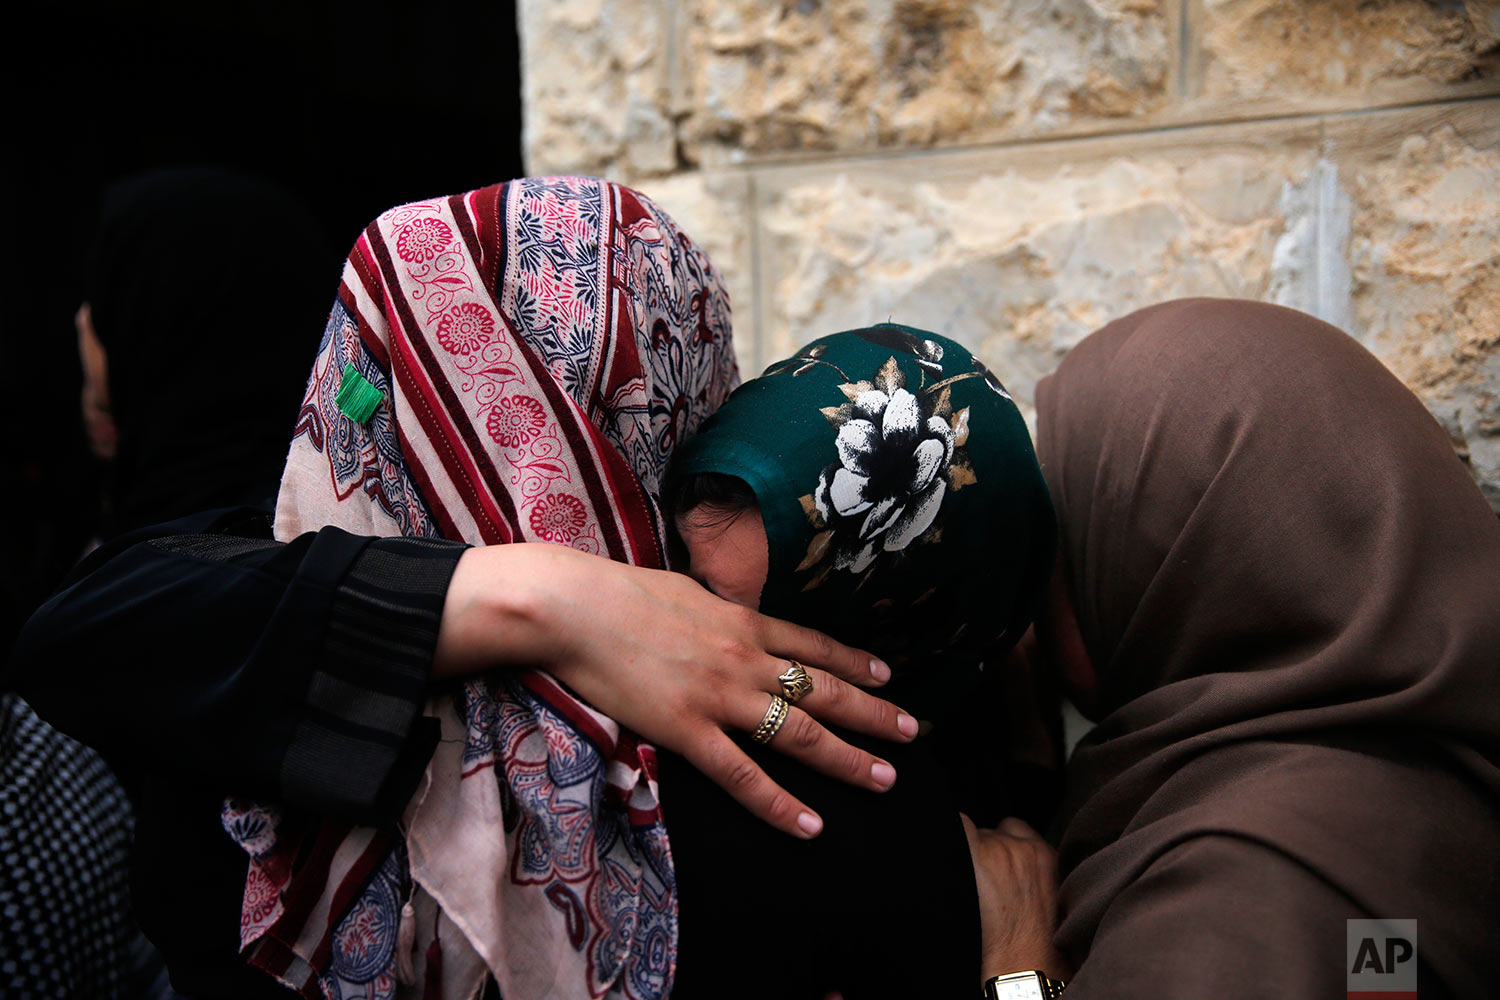 Relatives mourn during the funeral of  Mohammad Jebril in the West Bank village of Tekoa, near Bethlehem, Tuesday, July 11, 2017. Jebril was shot dead Monday after a stabbing attack against Israeli soldiers at Tekoa checkpoint. (AP Photo/Nasser Shiyoukhi).